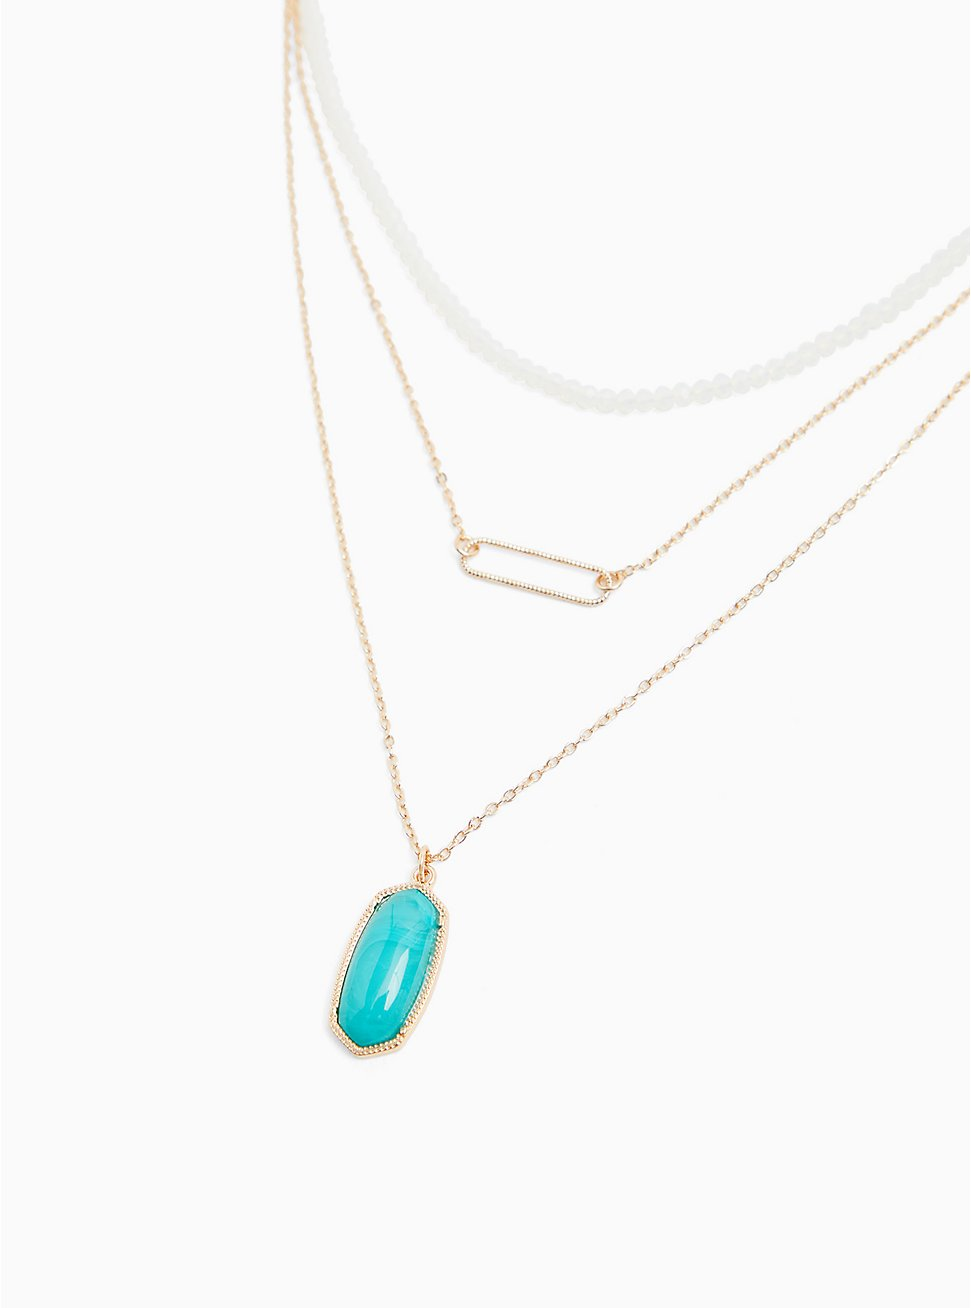 Gold-Tone & Turquoise Pendant Layered Necklace, , hi-res